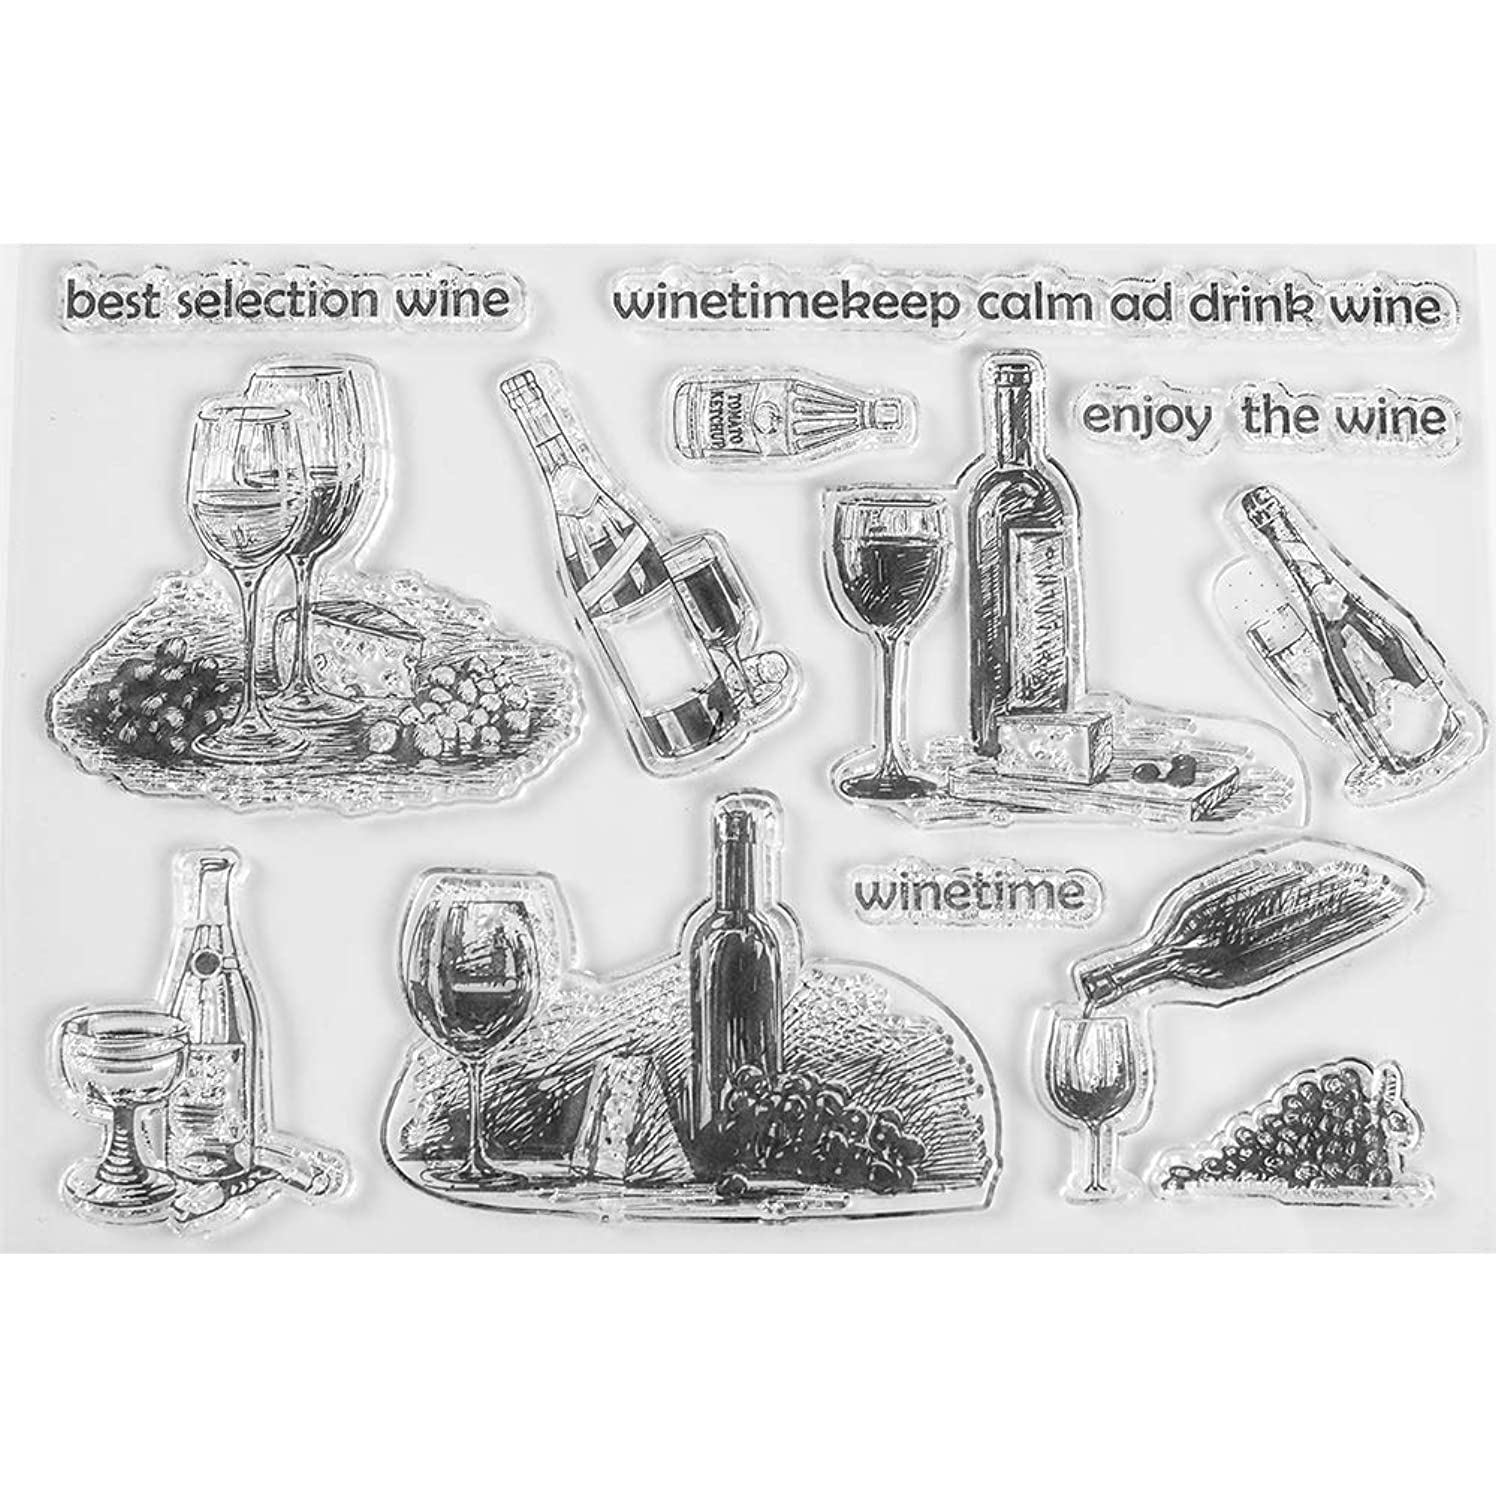 MaGuo Drink Clear Stamps Wine Time for Paper Craft and DIY Scrapbooking